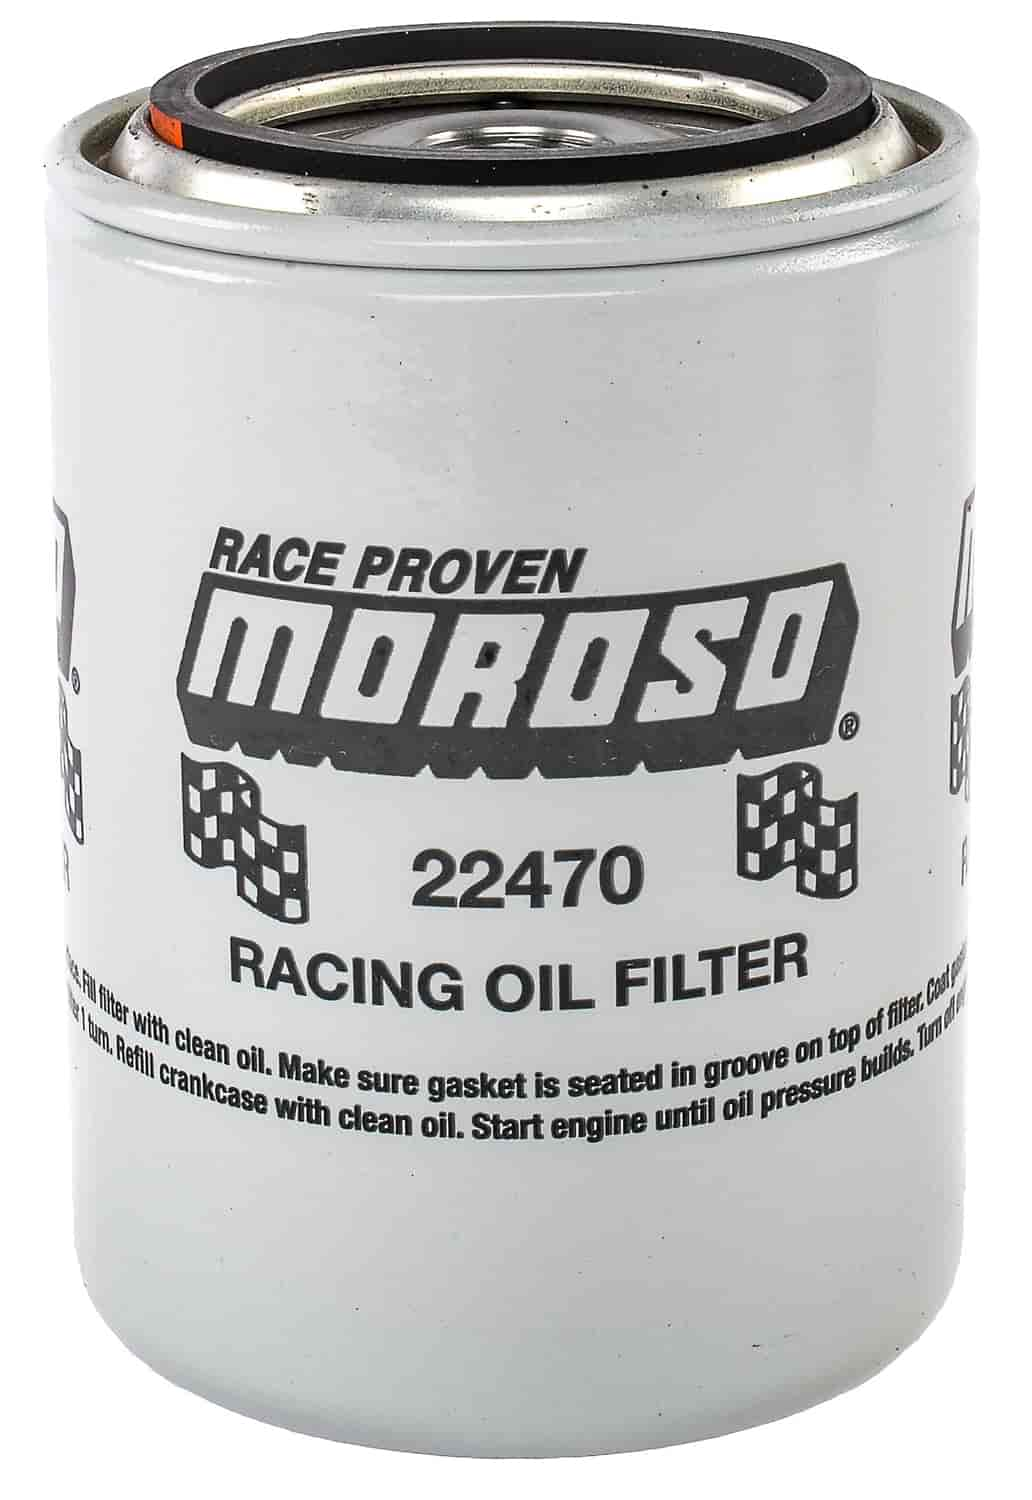 Moroso 22470: Ford & Chrysler Racing Oil Filter Ford/Chrysler Type on 1948 cadillac wiring diagram, 1936 ford brakes, auto light switch wiring diagram, 1927 buick wiring diagram, 6 volt generator wiring diagram, 1942 chevy wiring diagram, 1955 buick wiring diagram, 1960 chevy wiring diagram, 1936 ford distributor, 1931 buick wiring diagram, 1939 chevy wiring diagram, 1936 ford continental kit, 1937 cord wiring diagram, 1949 cadillac wiring diagram, 1938 chevy wiring diagram, 1938 buick wiring diagram, 1948 chevy wiring diagram, 1940 cadillac wiring diagram, 1940 buick wiring diagram, 1950 cadillac wiring diagram,